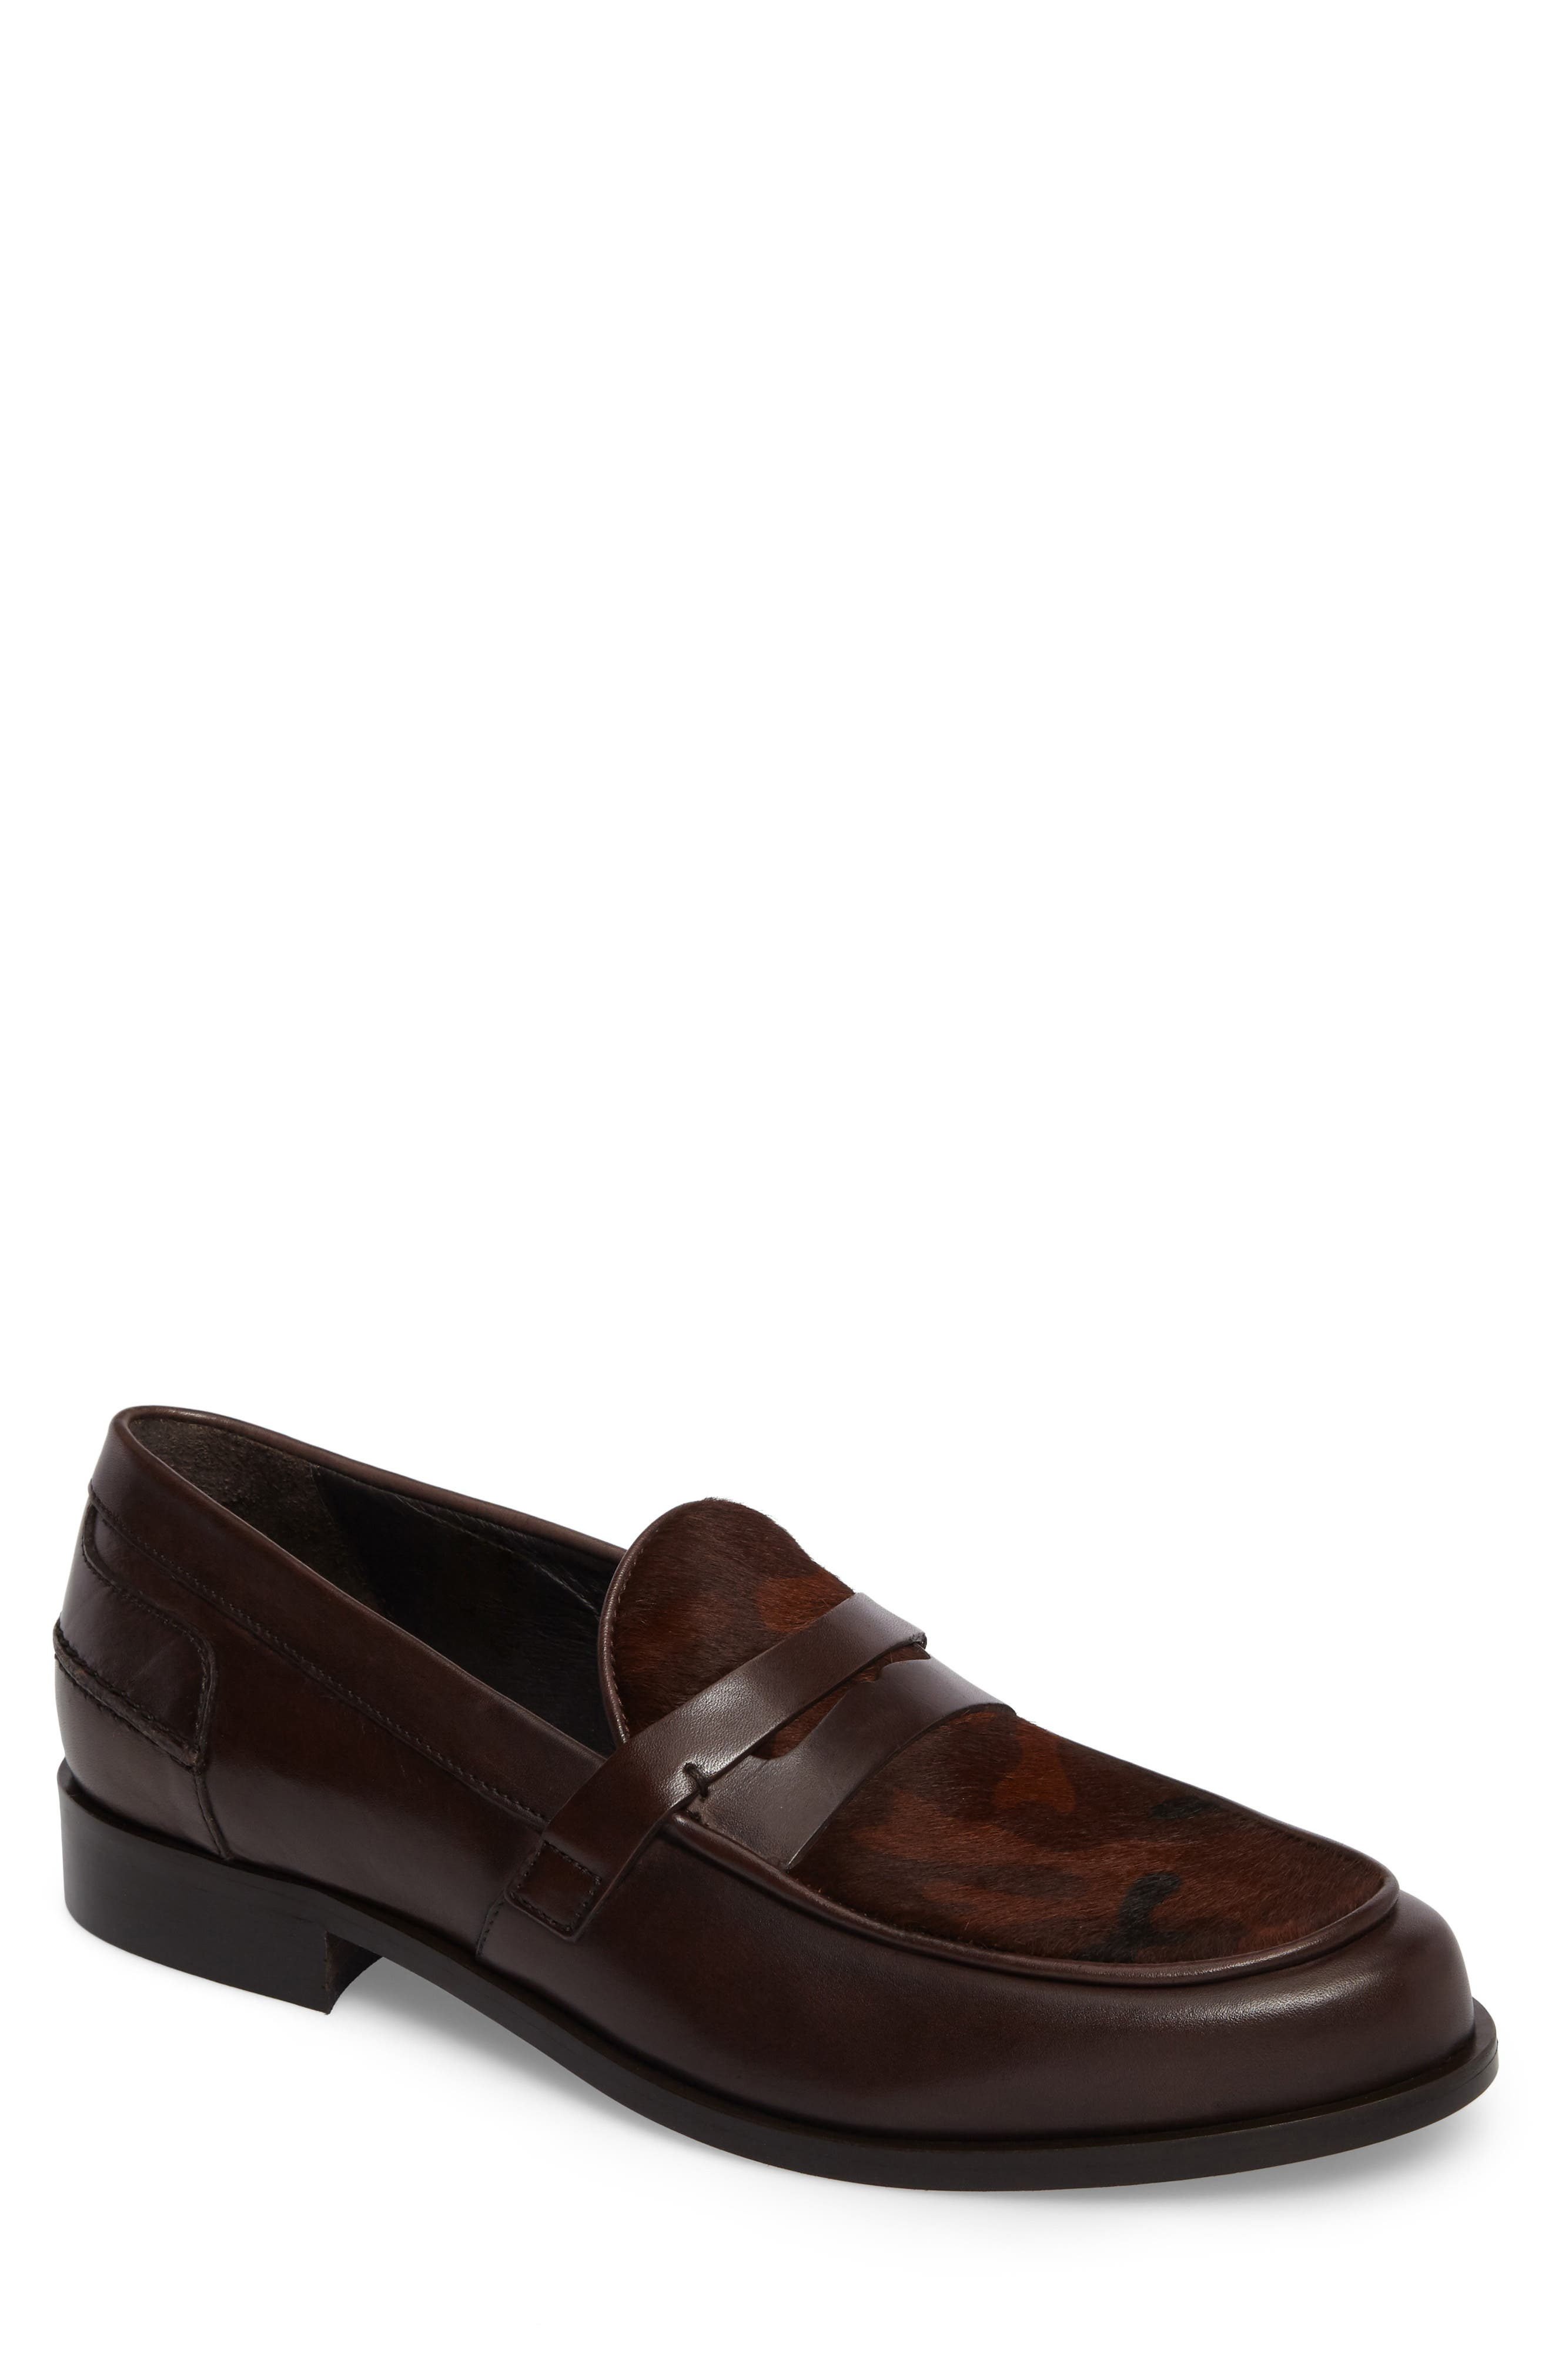 Main Image - Donald J Pliner Sawyer Penny Loafer (Men)